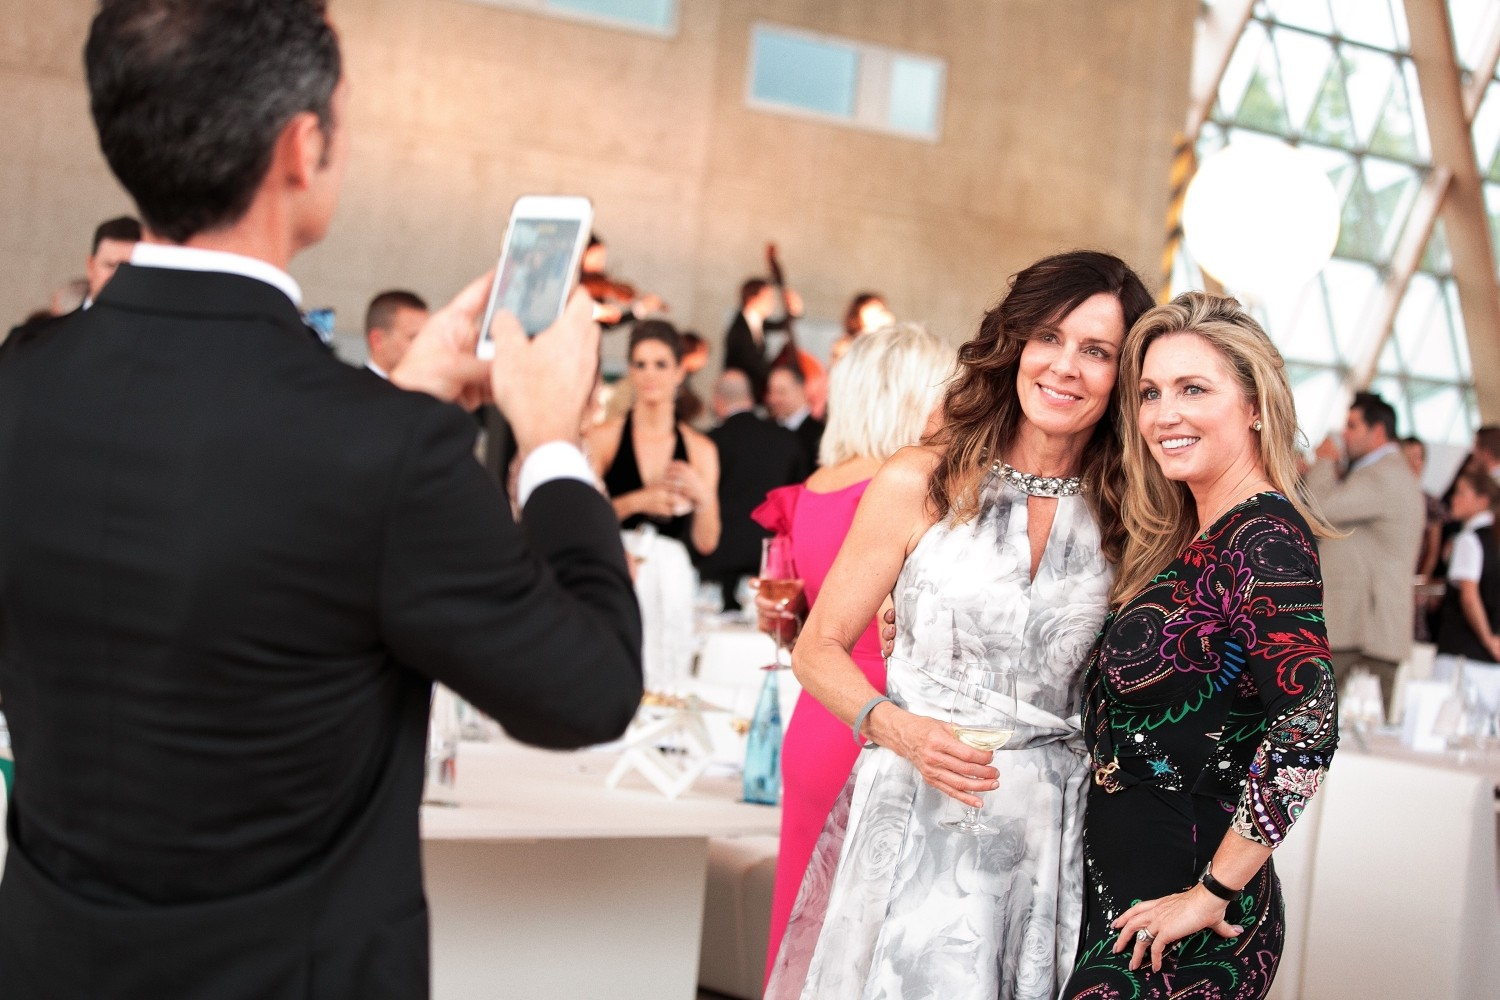 Airsnap Pro | Corporate Photo & Video — Rodan & Fields, French Riviera